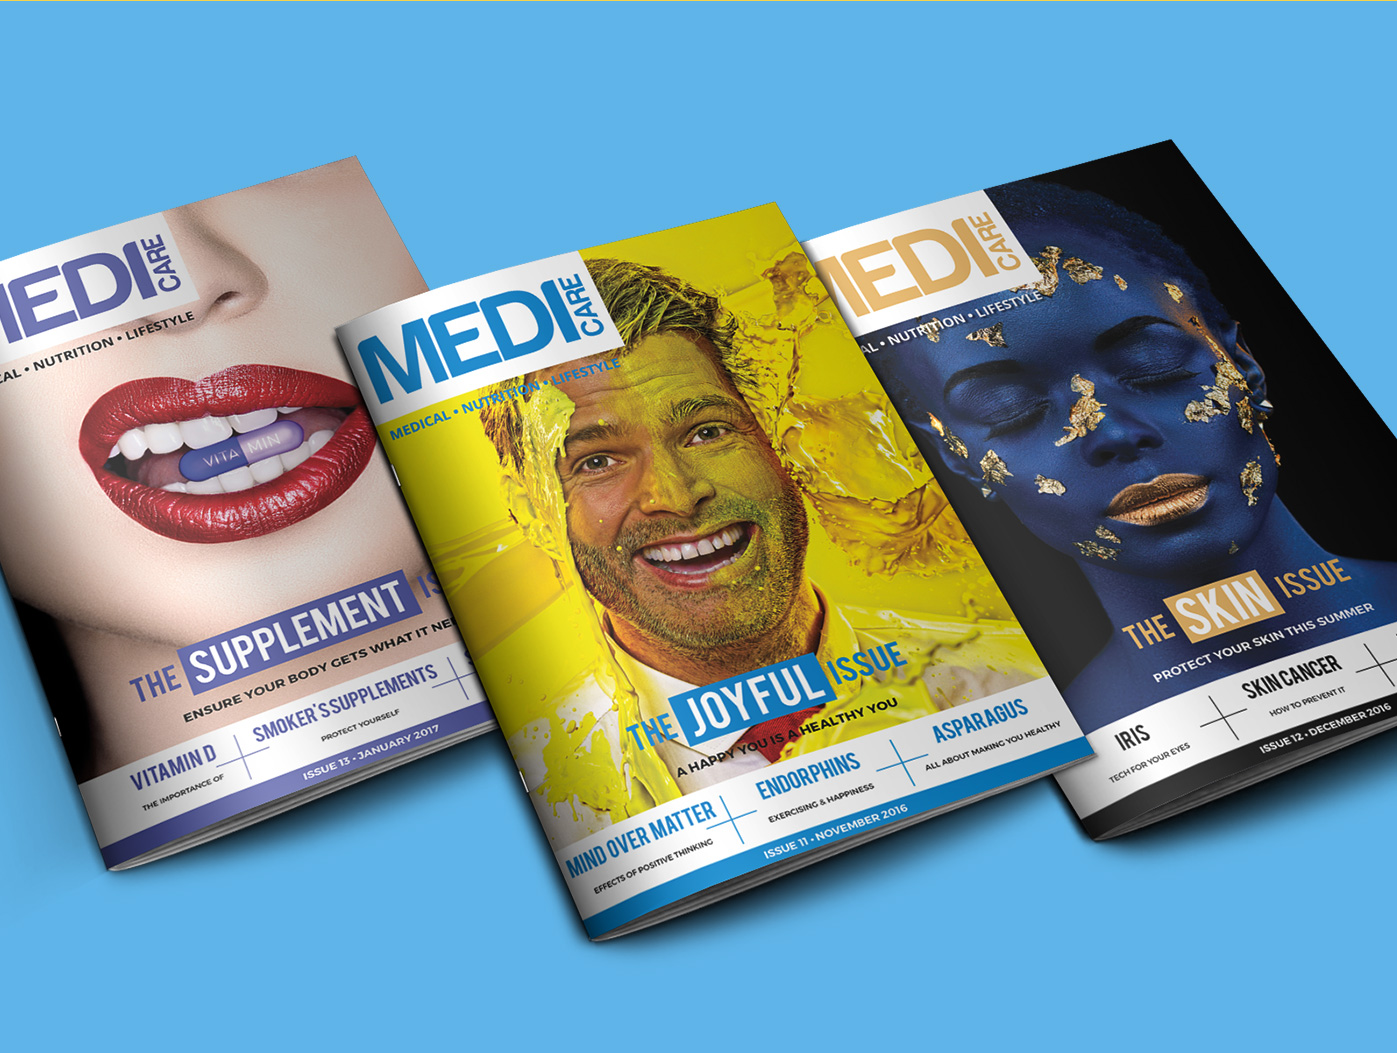 Medicare | Magazine Designs Graphic Design by Agent Orange South Africa